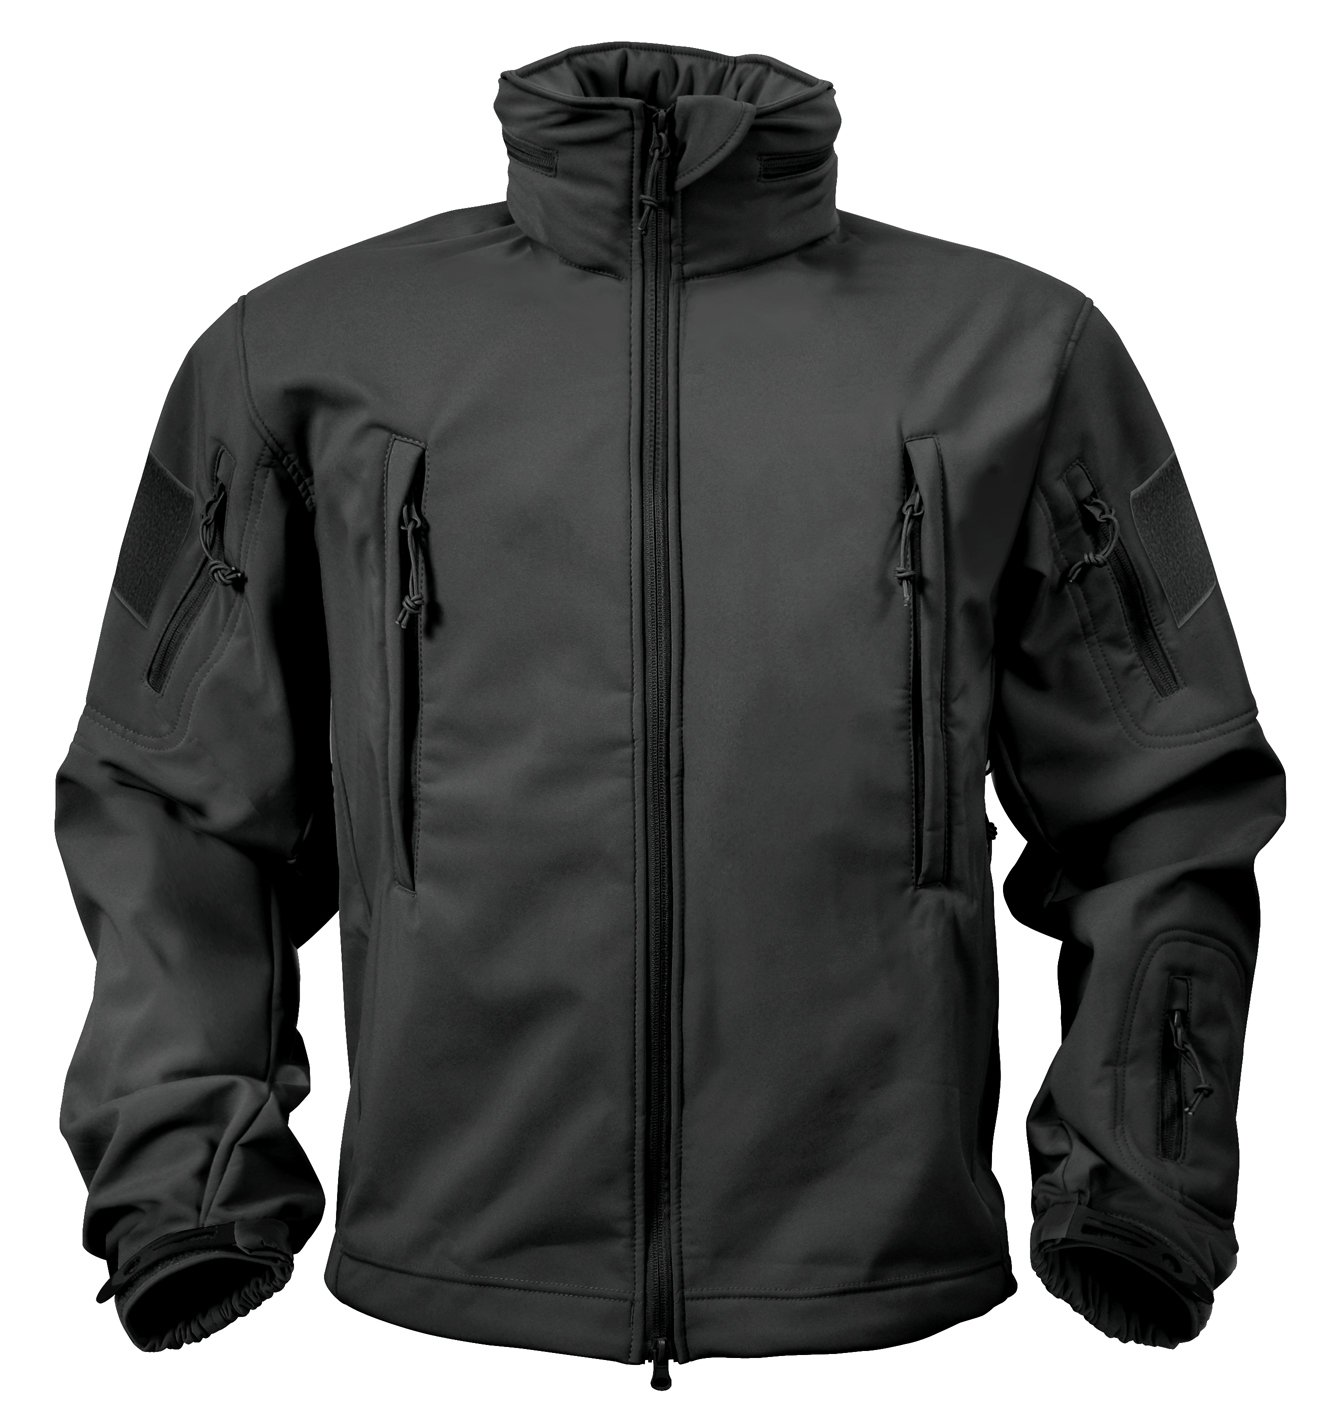 Rothco Special Ops Softshell Jacket, Black, 3X-Large by Rothco (Image #2)